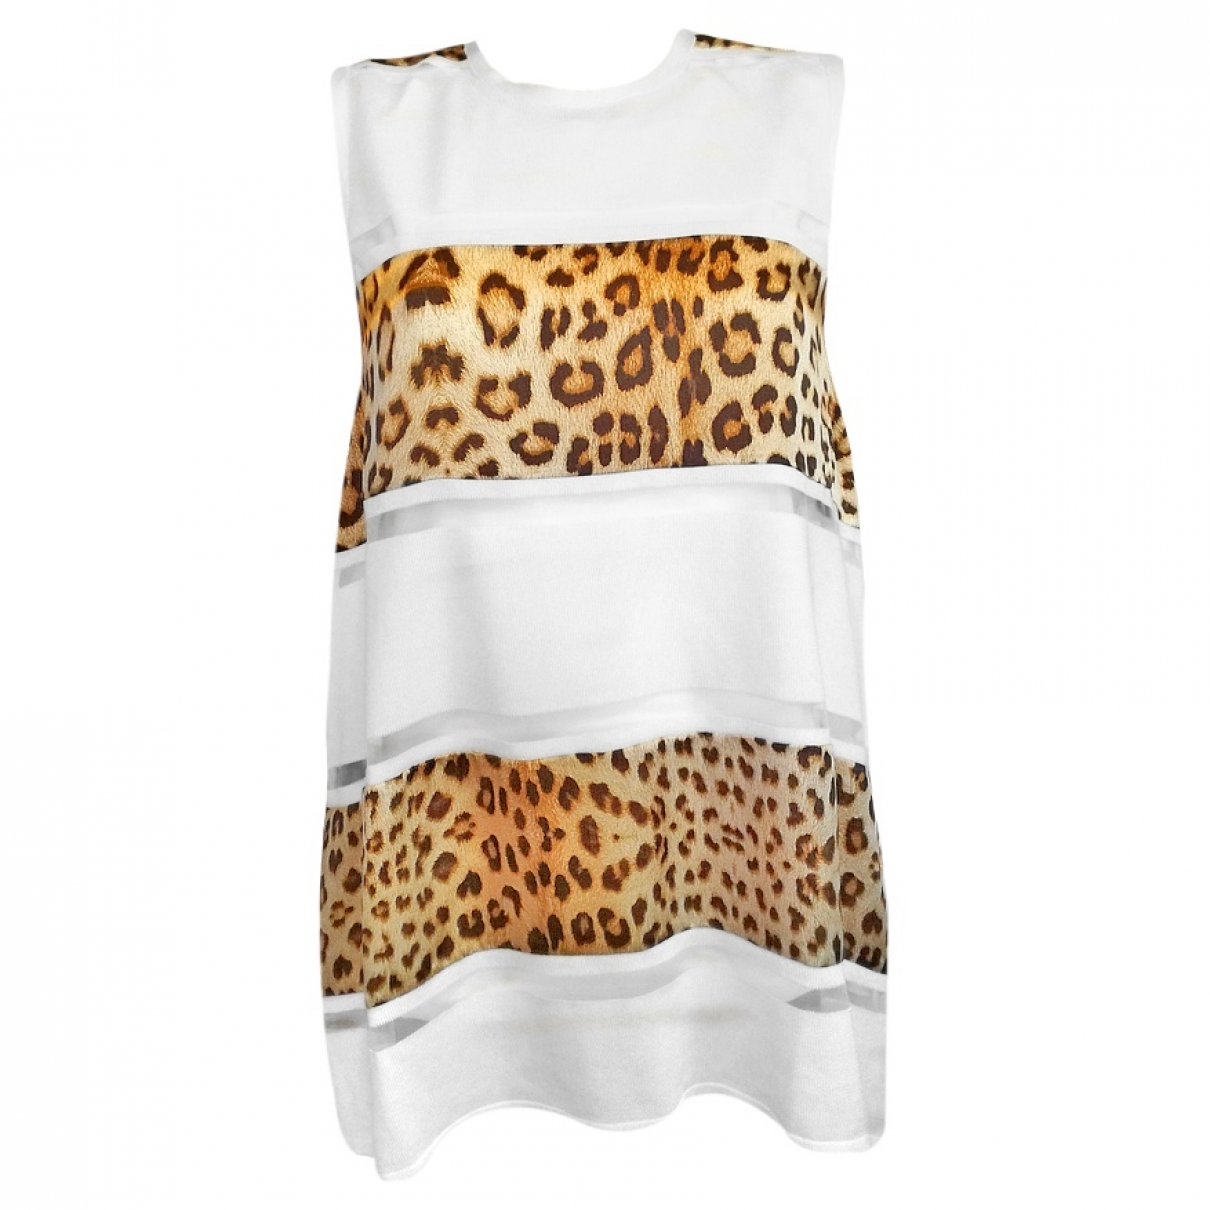 Roberto Cavalli \N White Cotton  top for Women L International